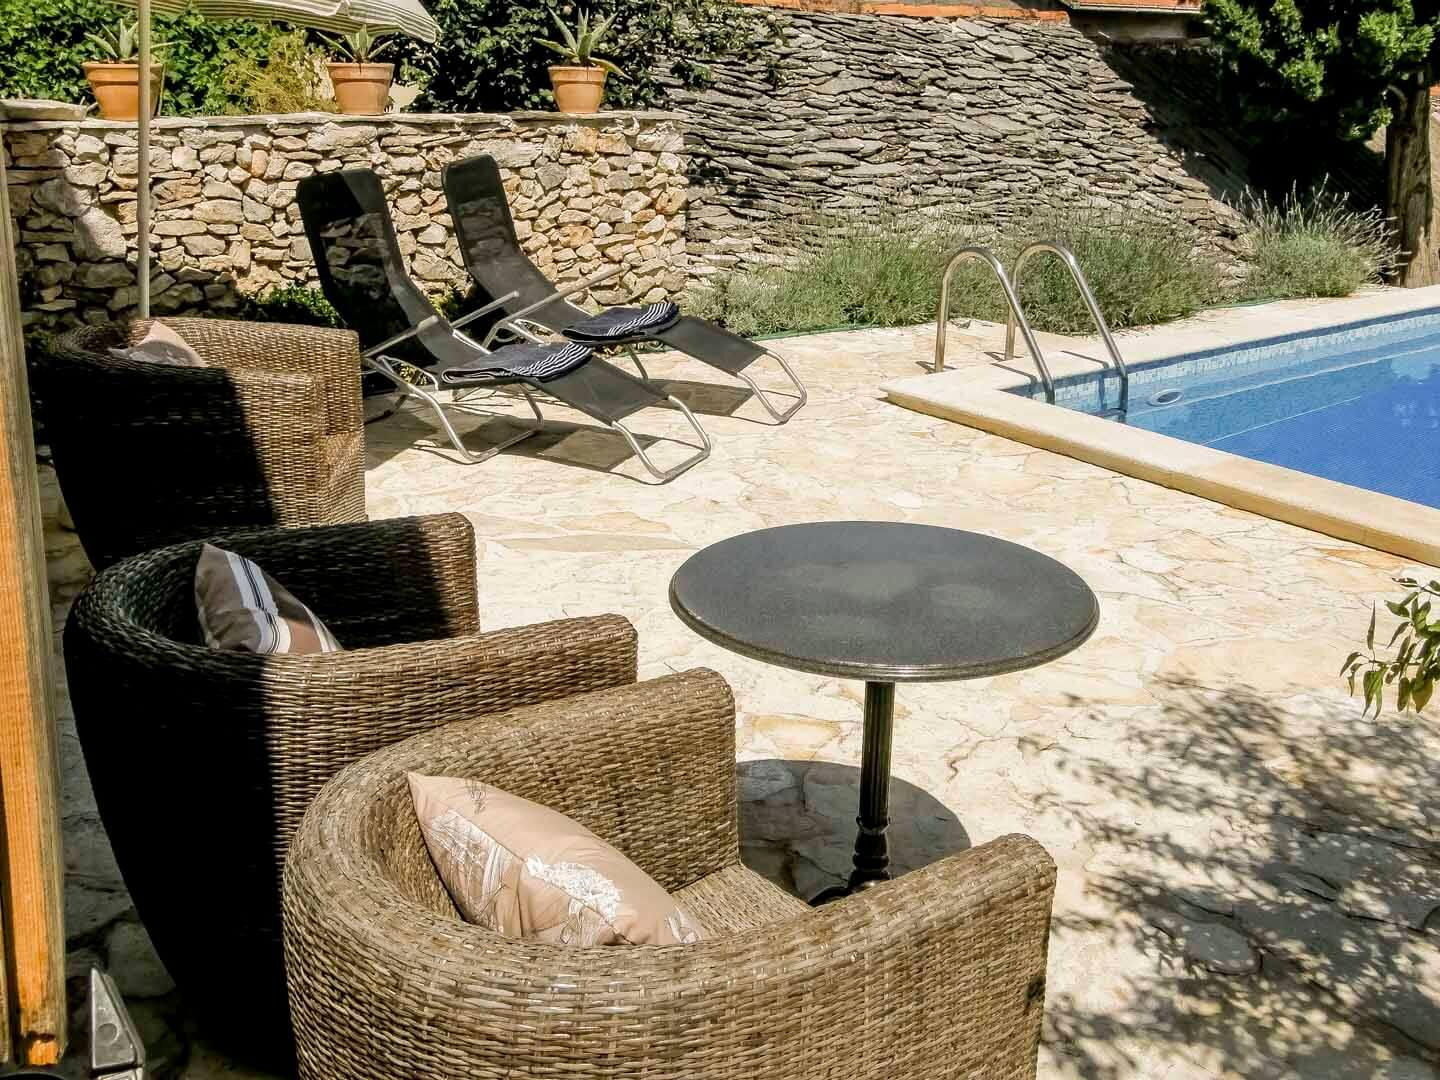 Swimming pool seating